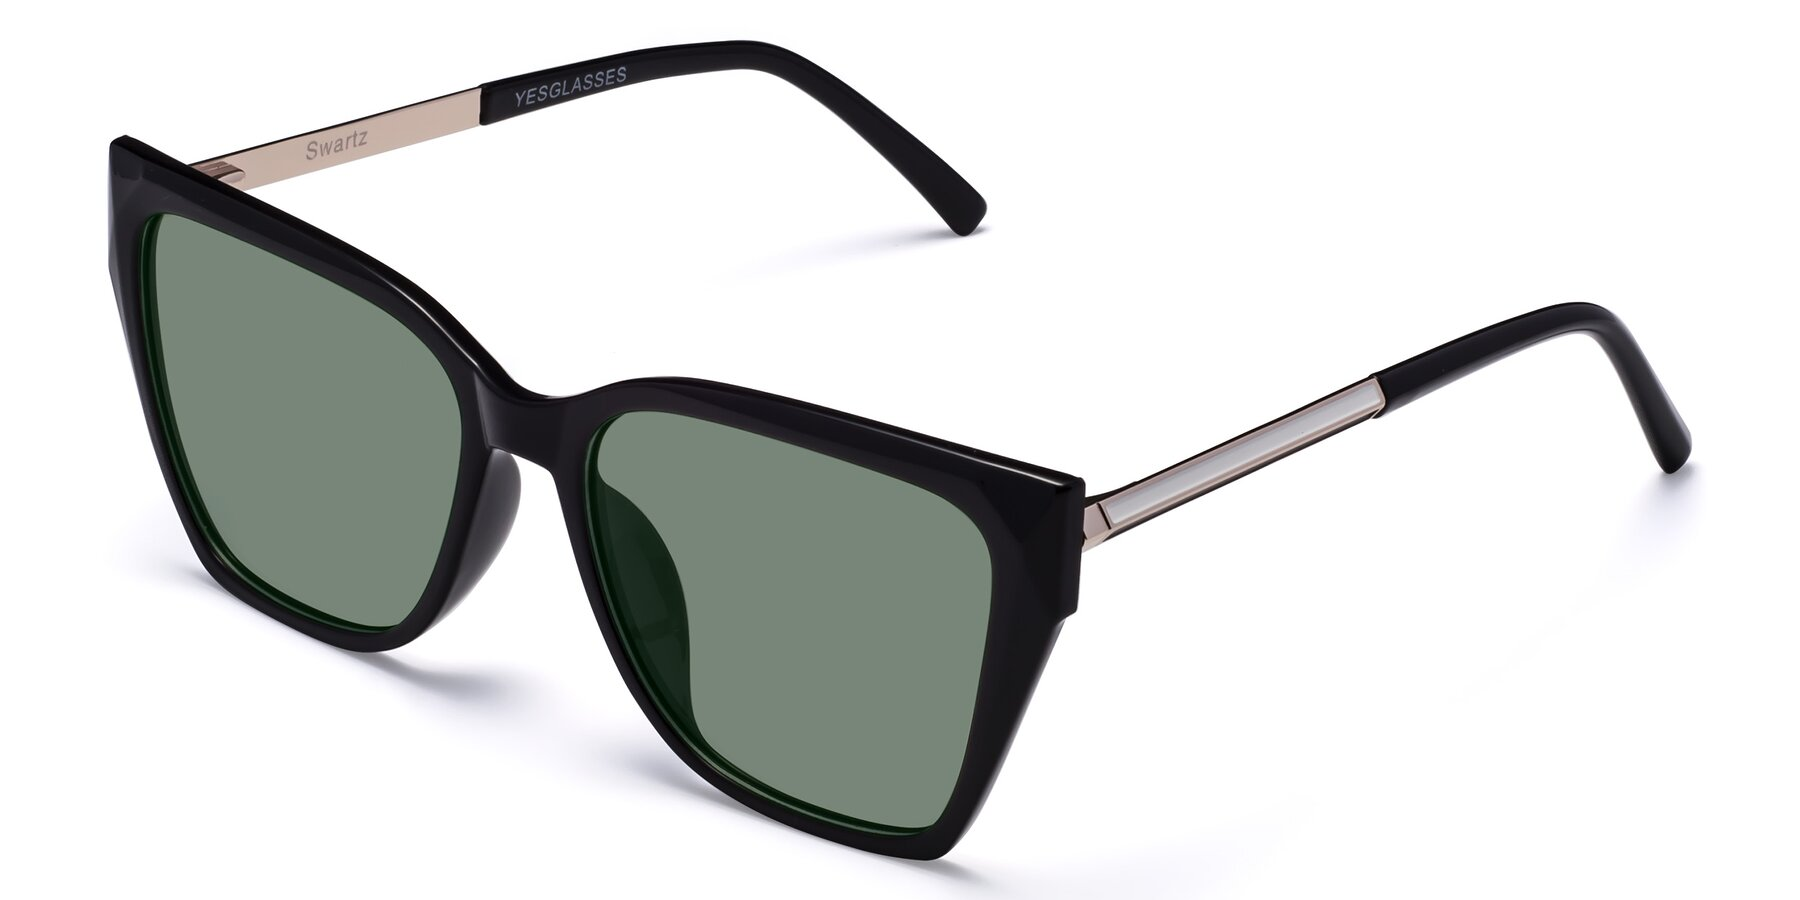 Angle of Swartz in Black with Medium Green Tinted Lenses